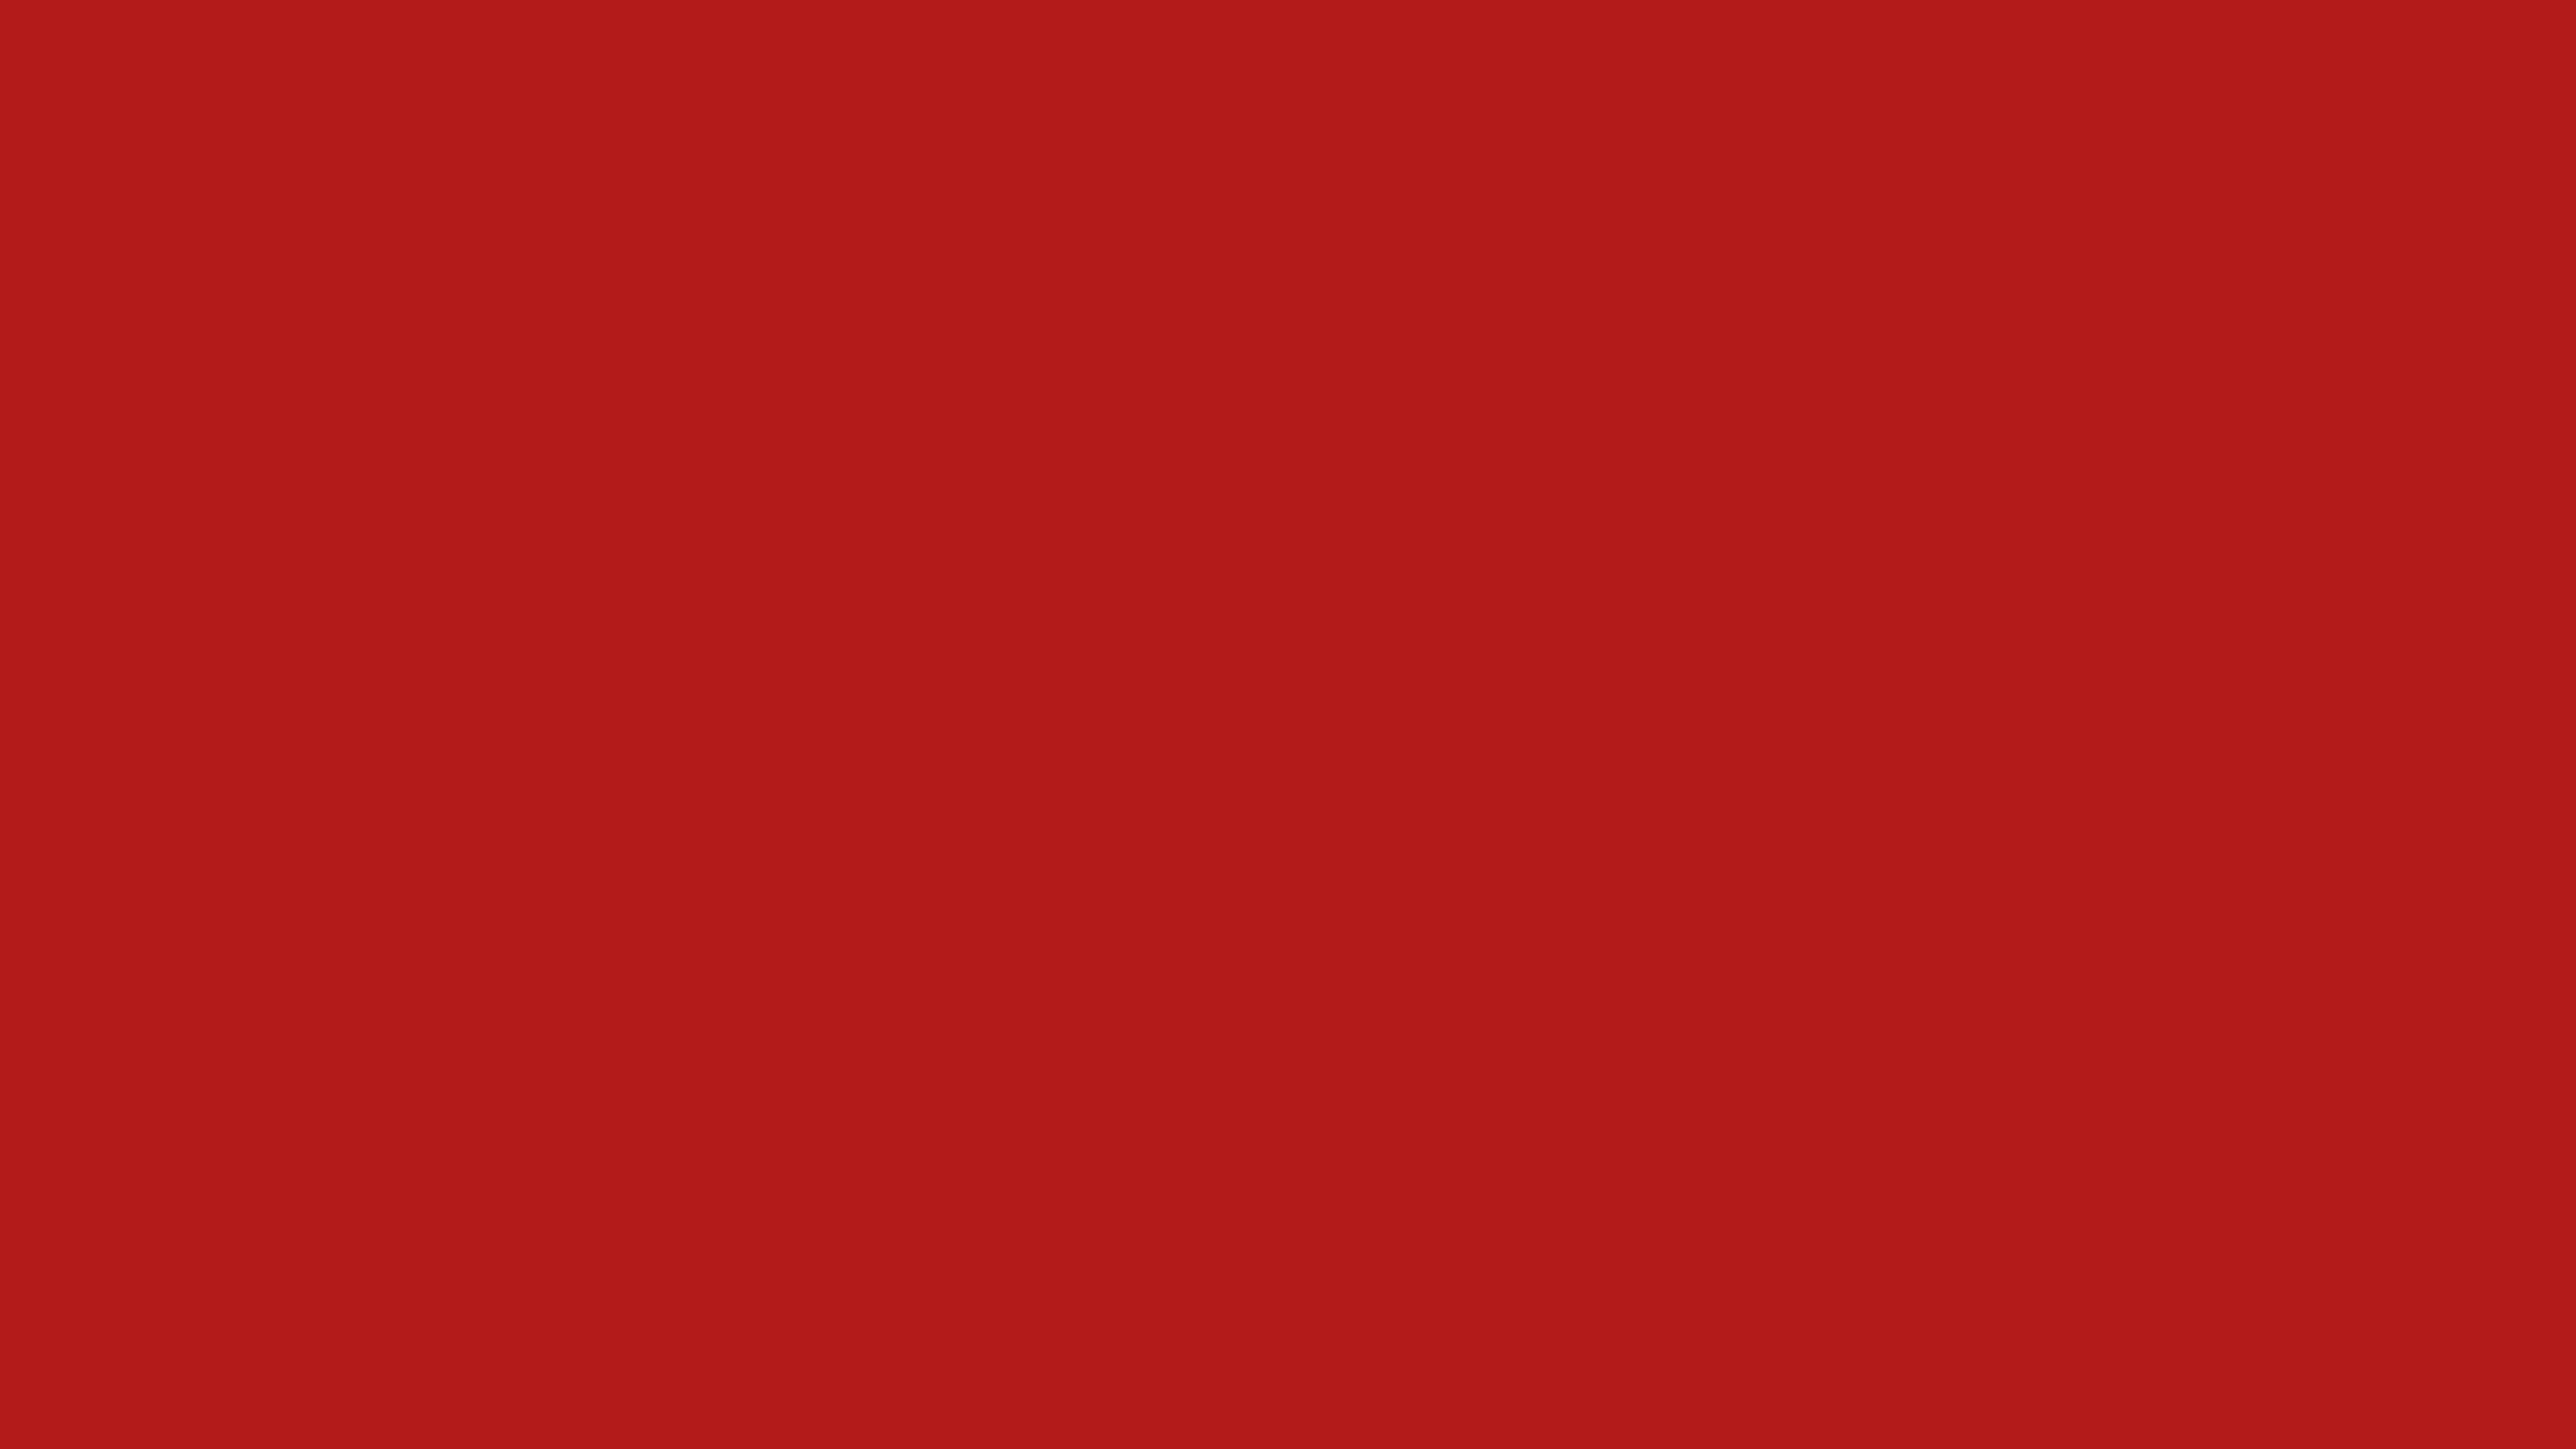 4096x2304 Cornell Red Solid Color Background